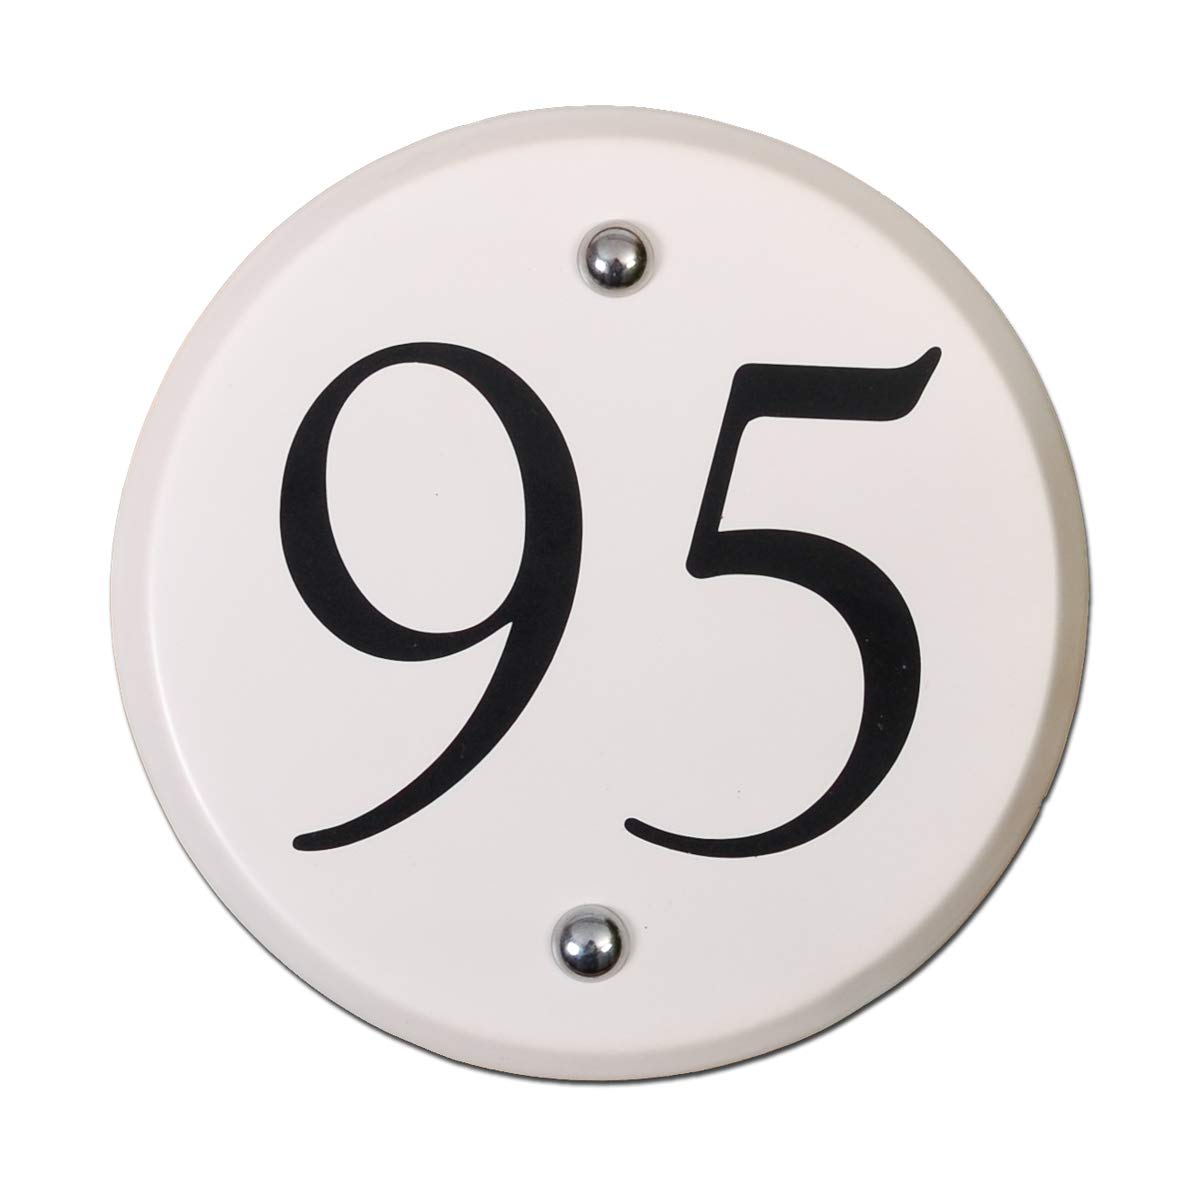 Signs & Numbers White ceramic round house number - SPECIAL CLEARANCE PRICE in UK